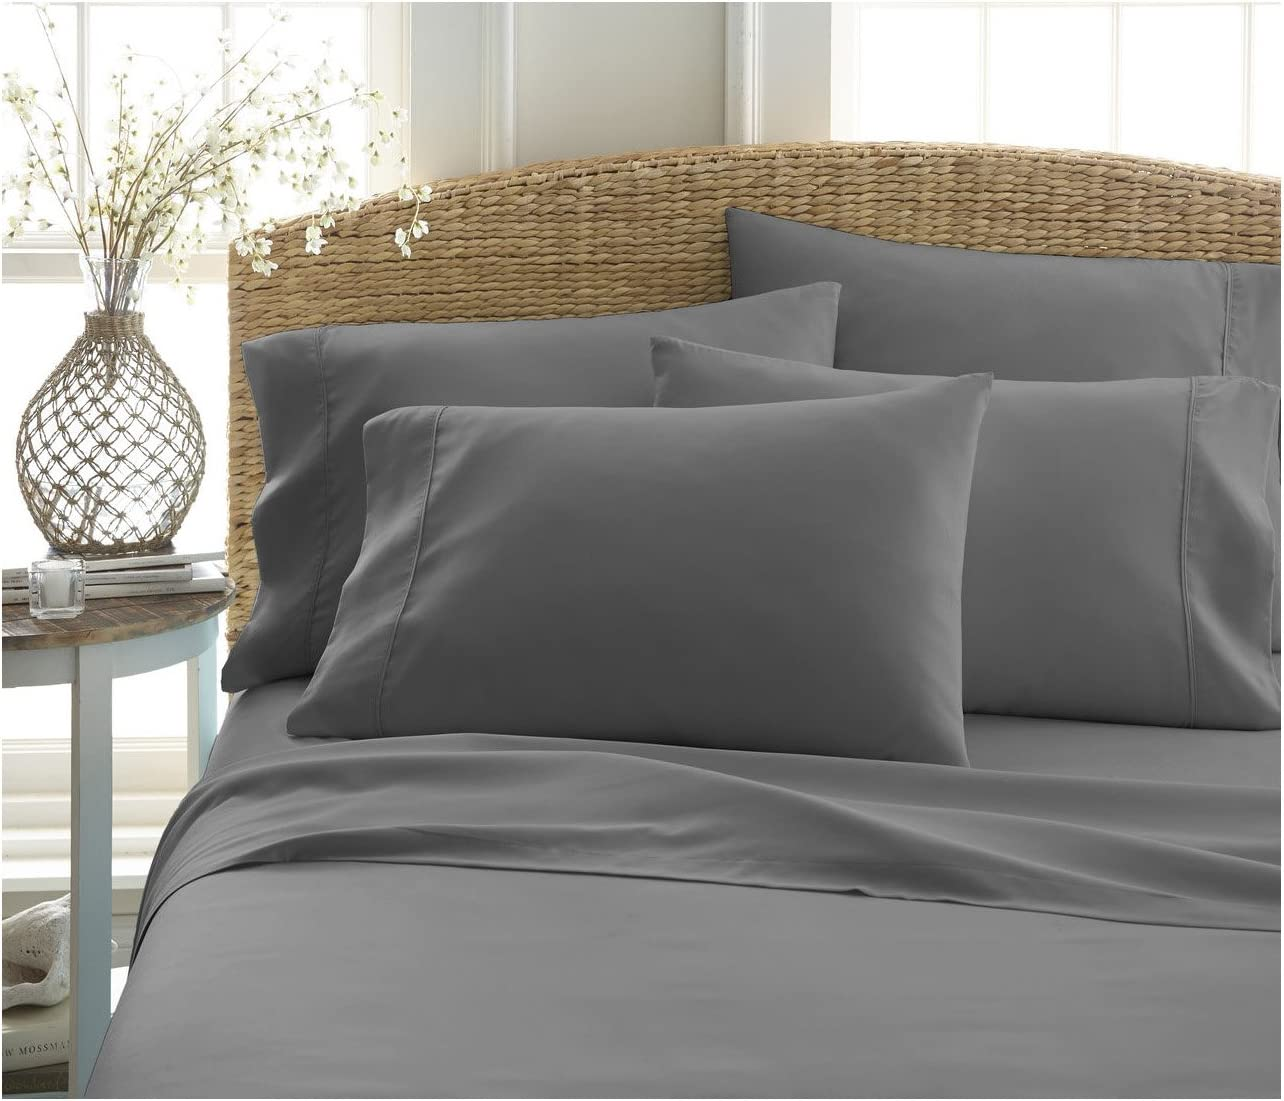 Becky Cameron ienjoy Home 6 Piece Double Brushed Microfiber Bed Sheet Set, King, Gray